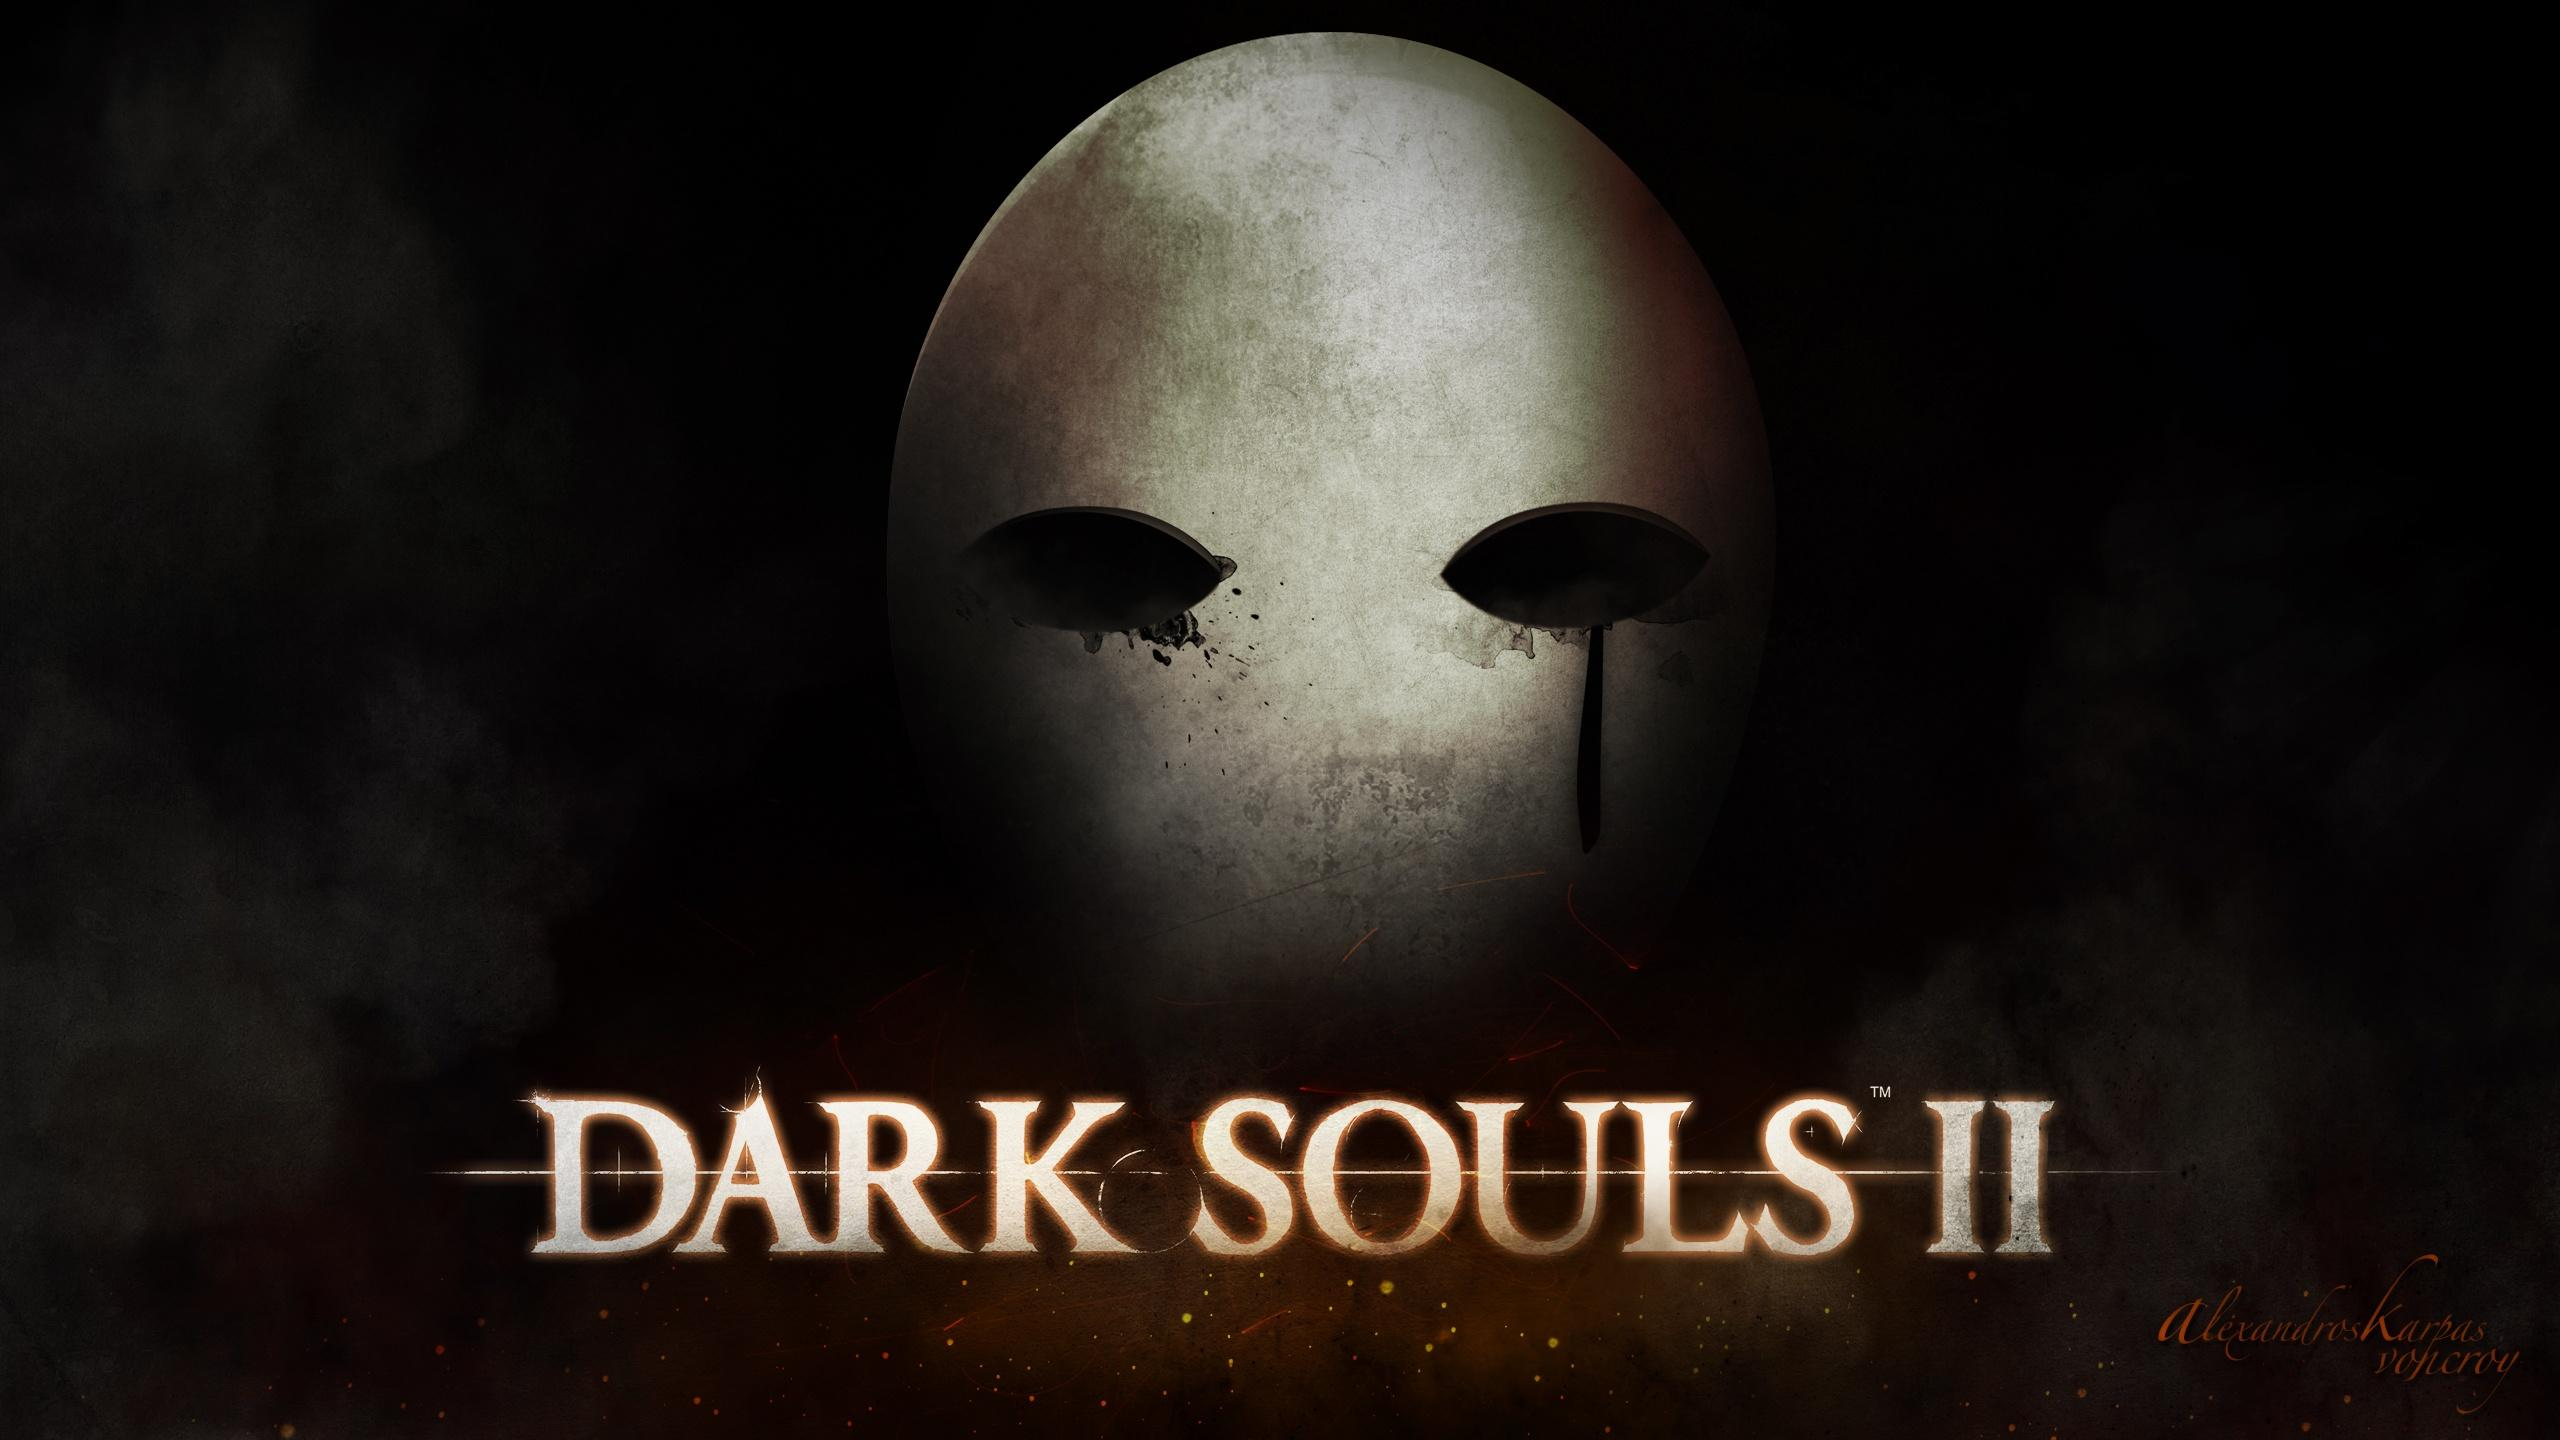 Dark Souls 2 Wallpapers hd